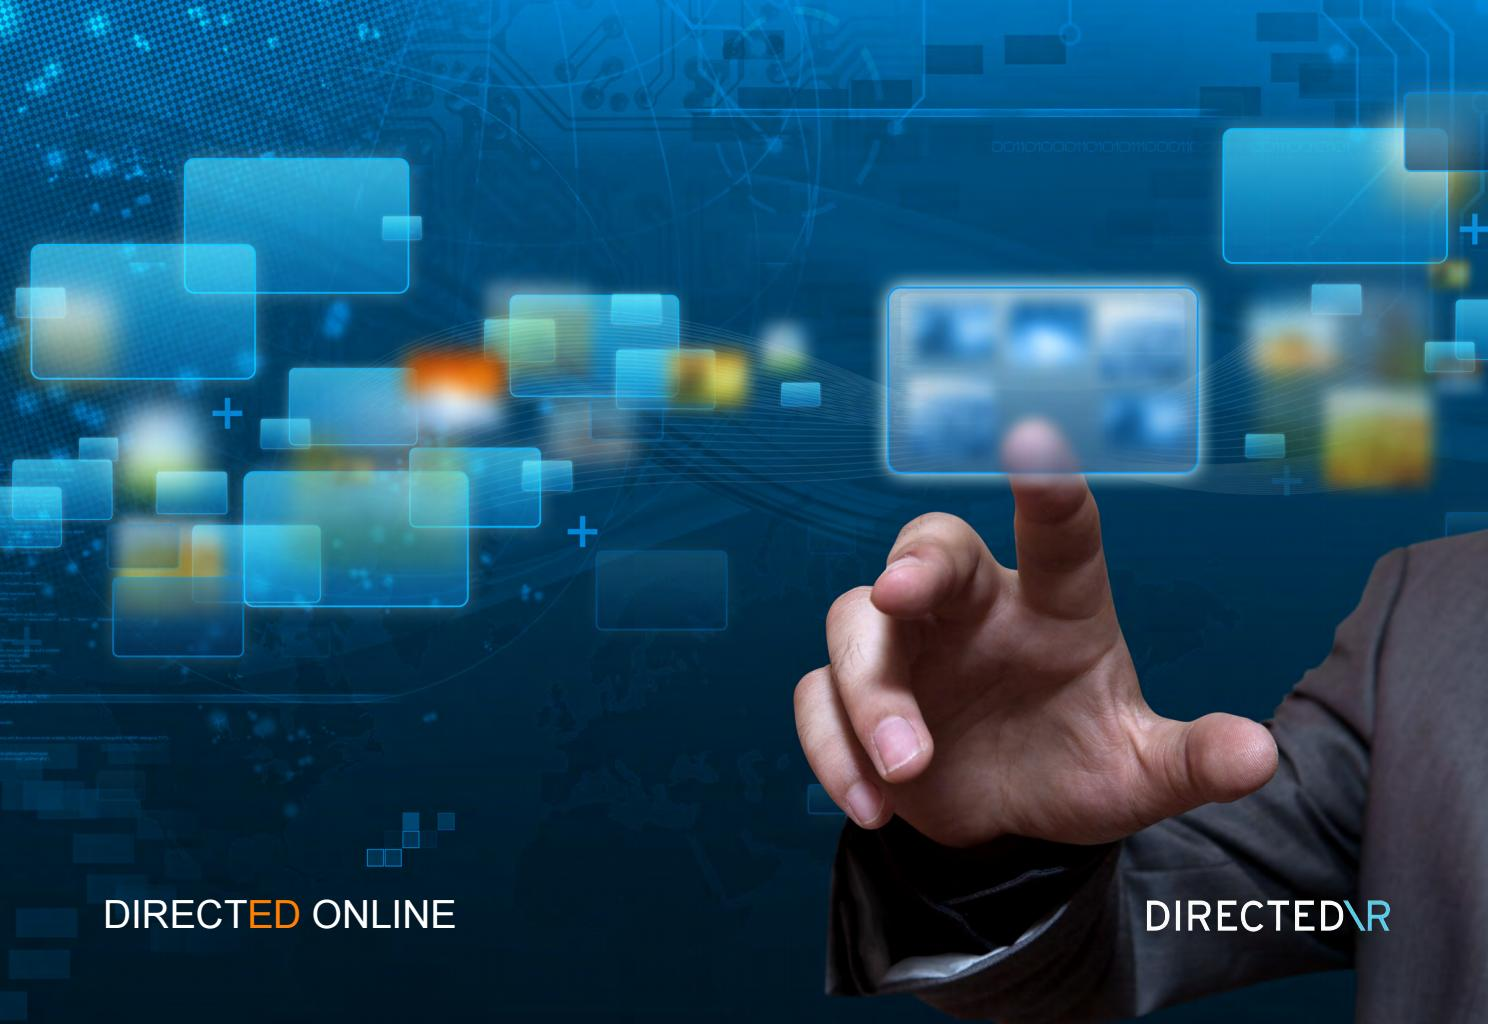 Directed Online Overview Of Services By Edward Sanders